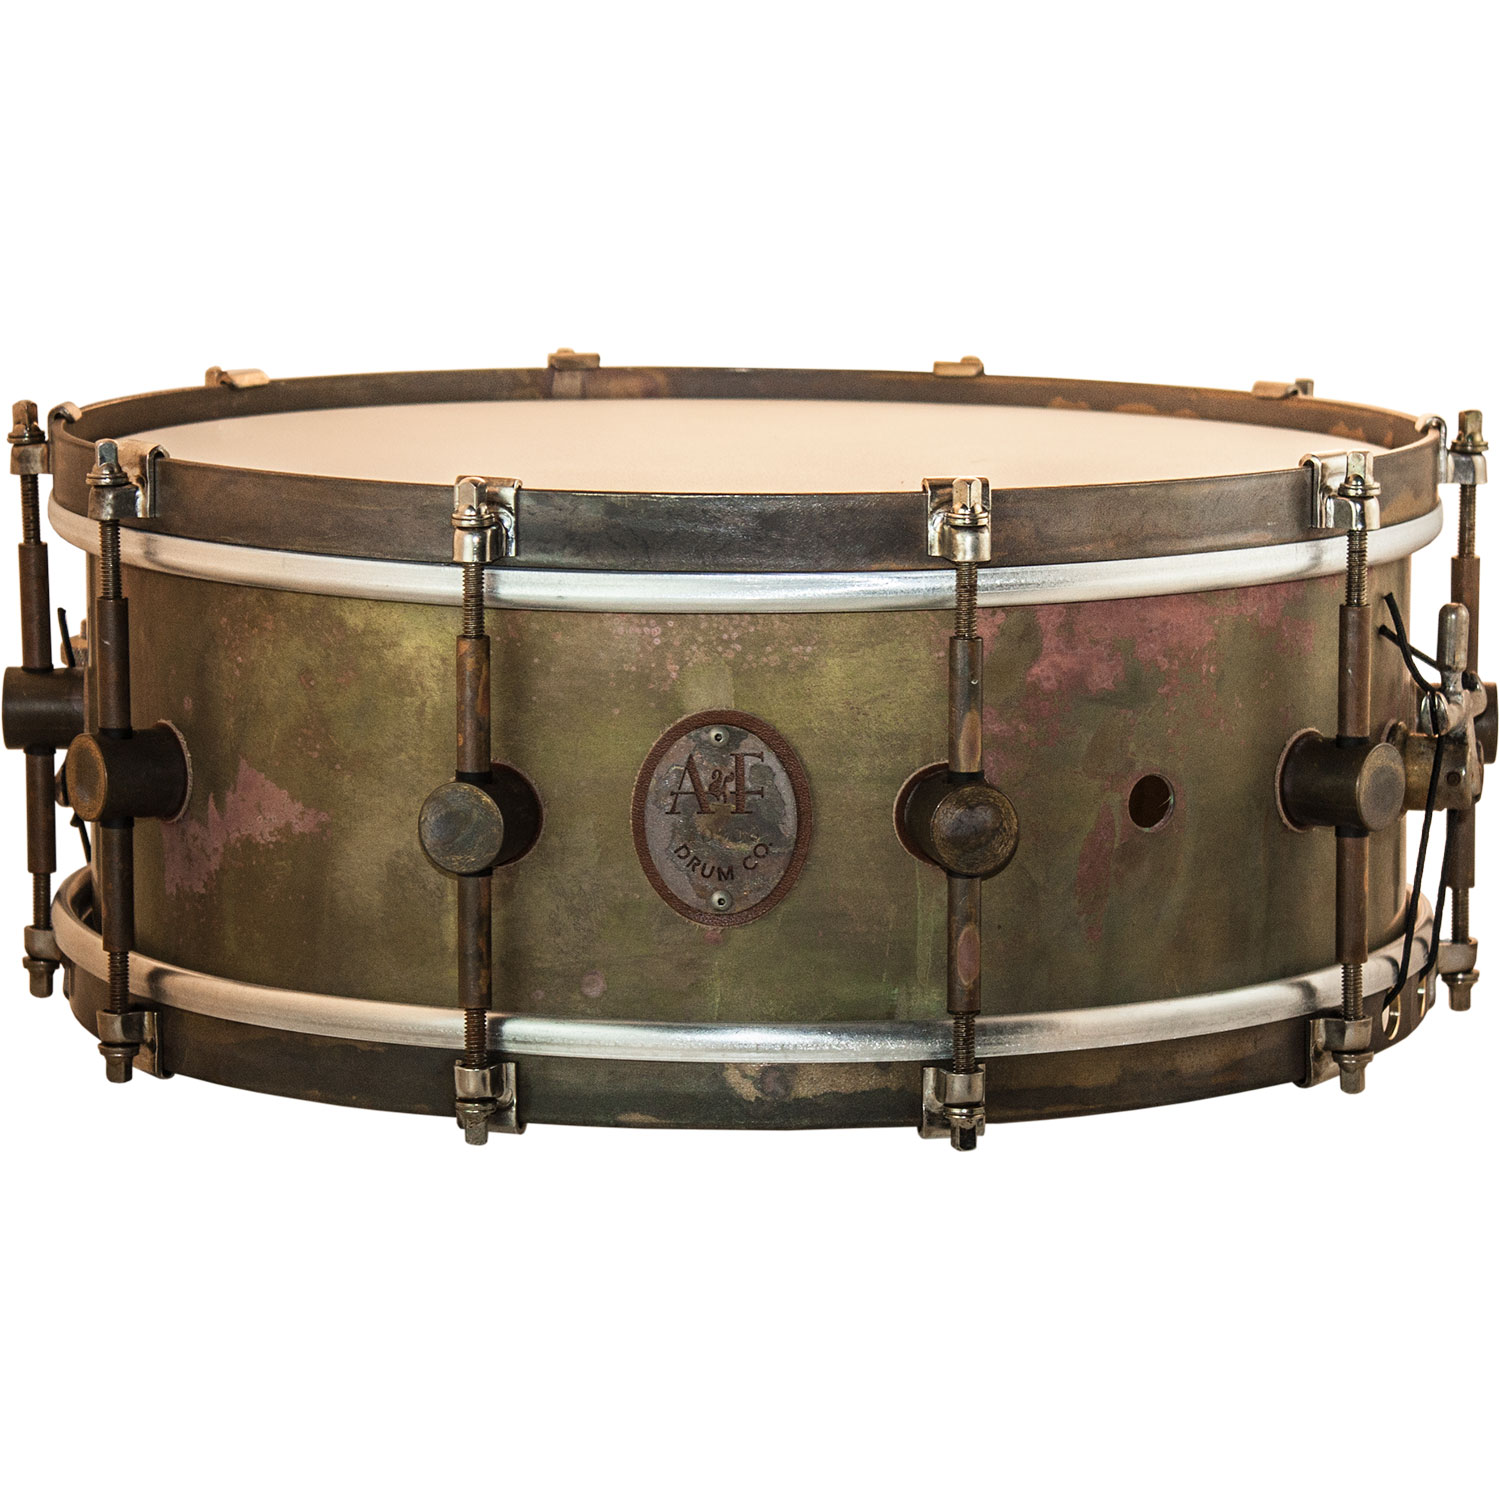 """A&F Drum Co. 5.5"""" x 14"""" Standard Snare Drum"""